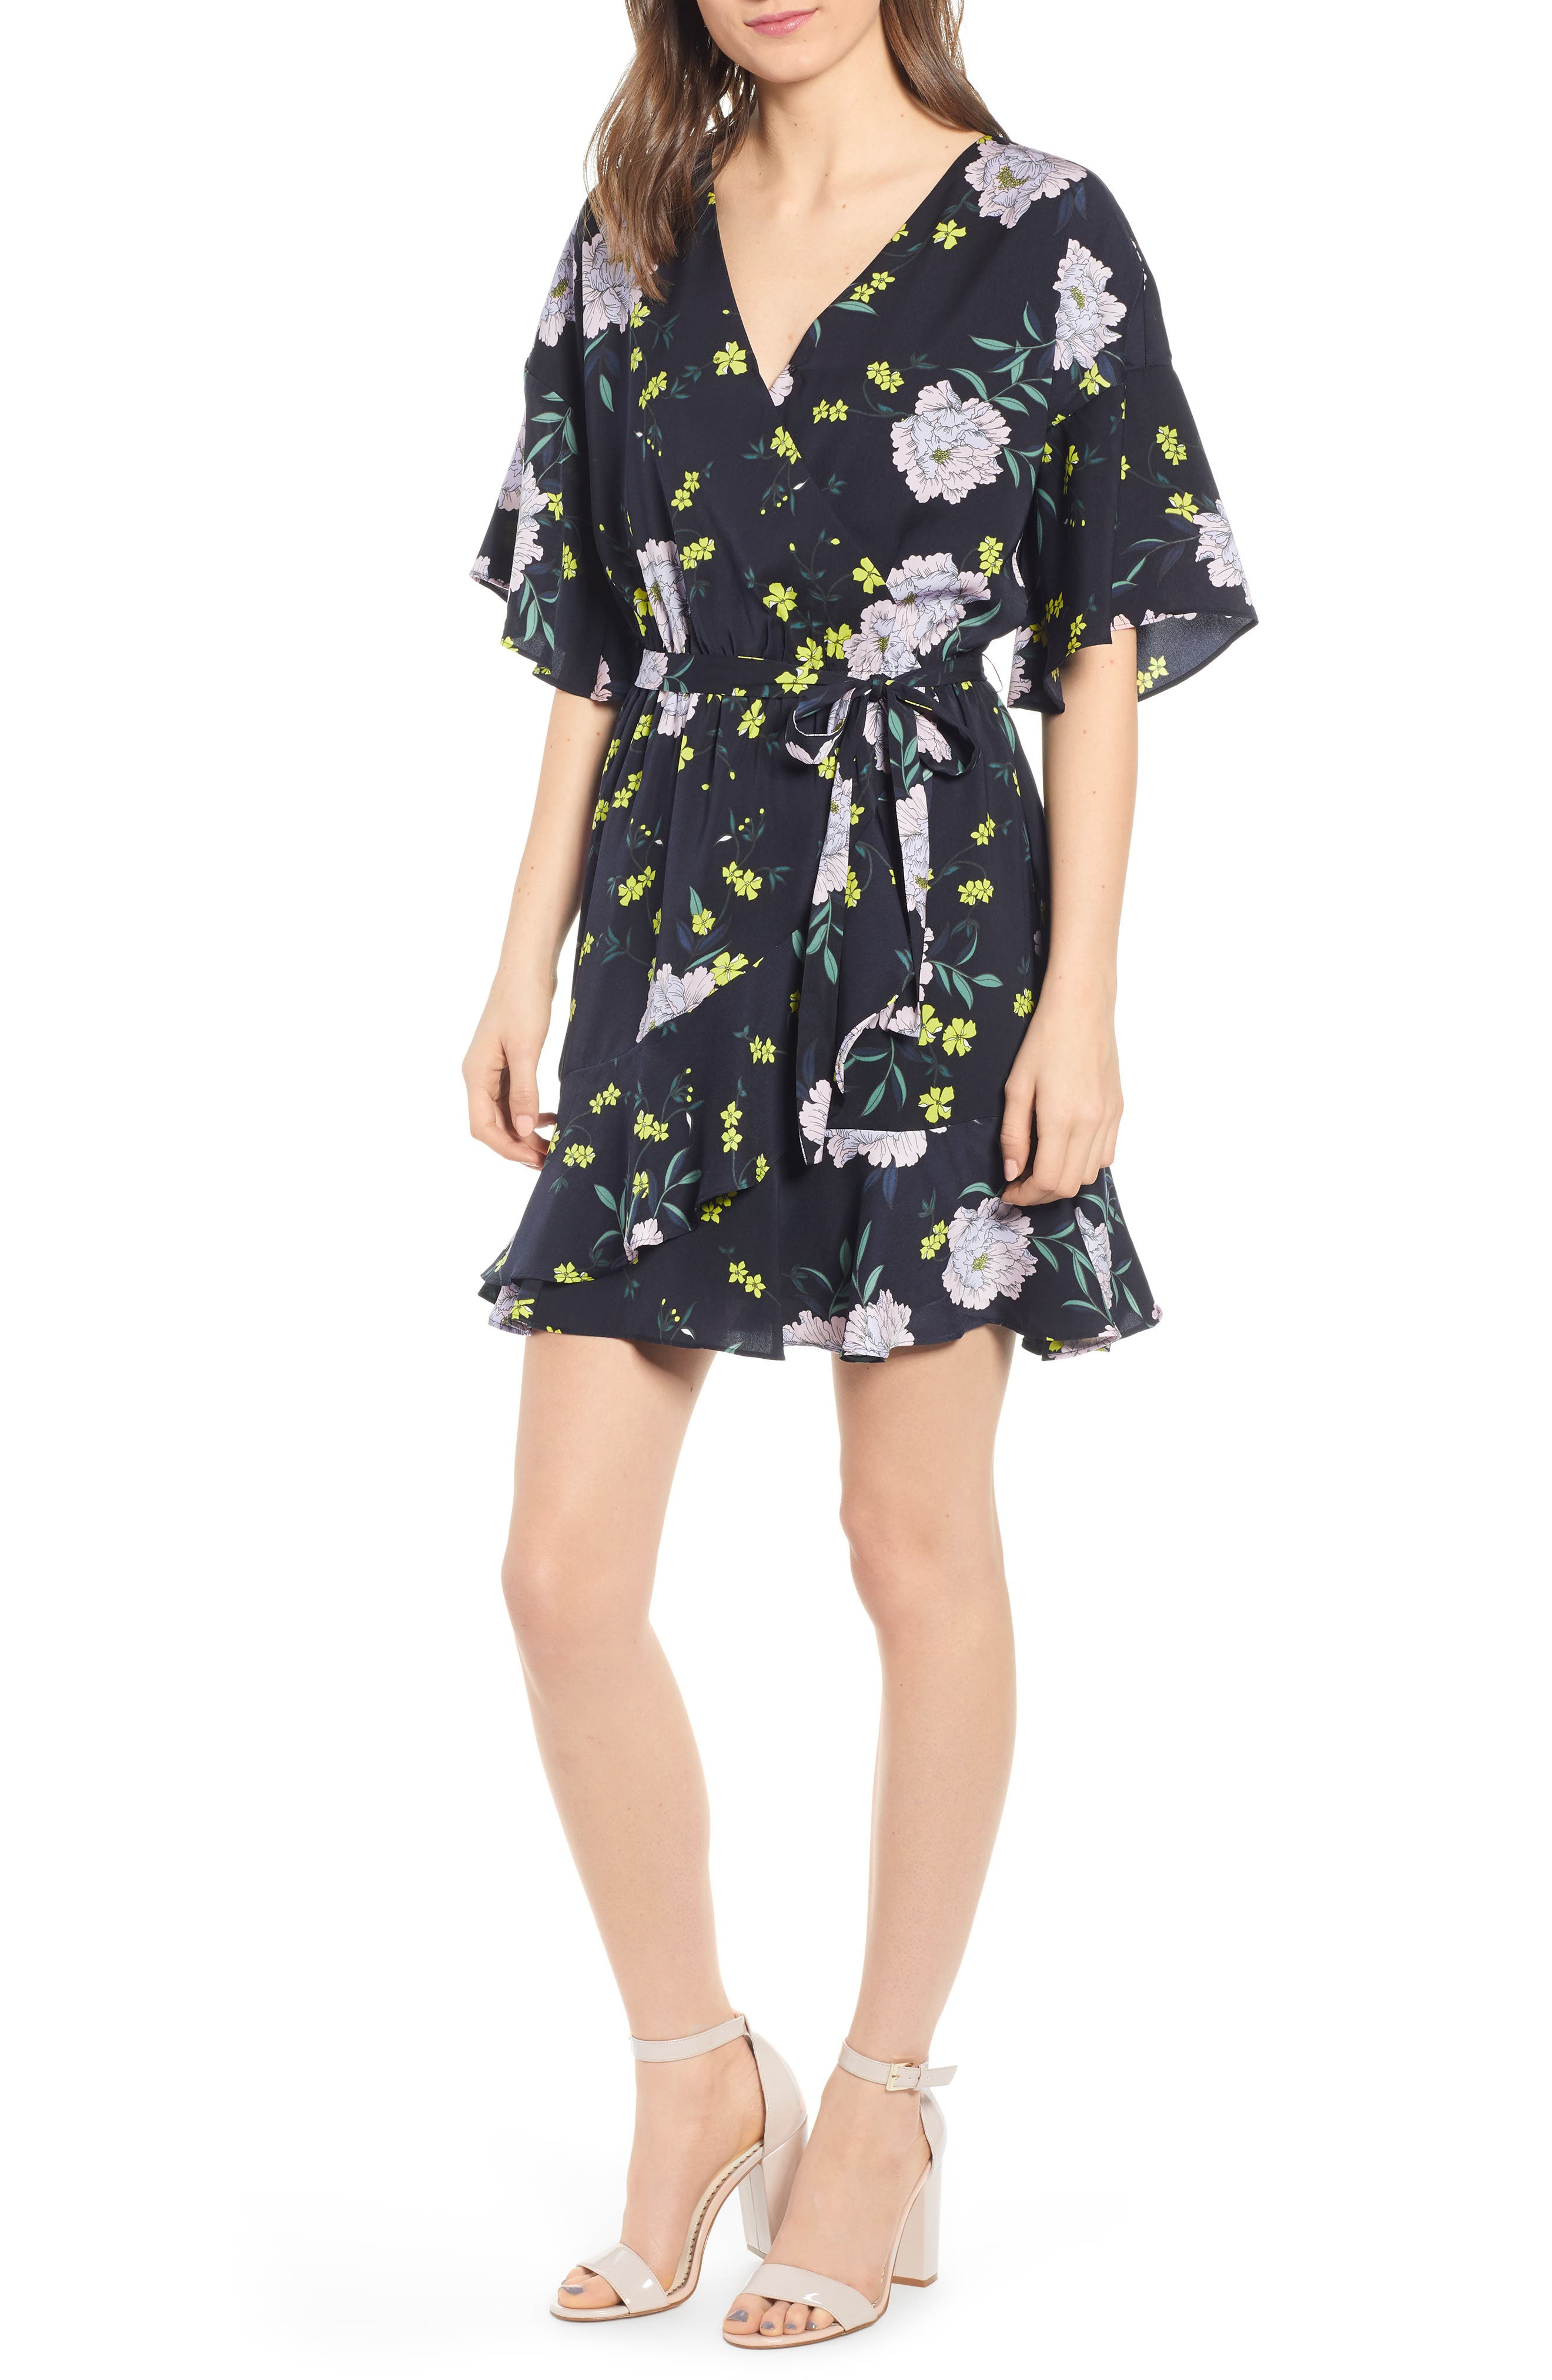 Cupcakes And Cashmere Floral Wrap Dress, Black